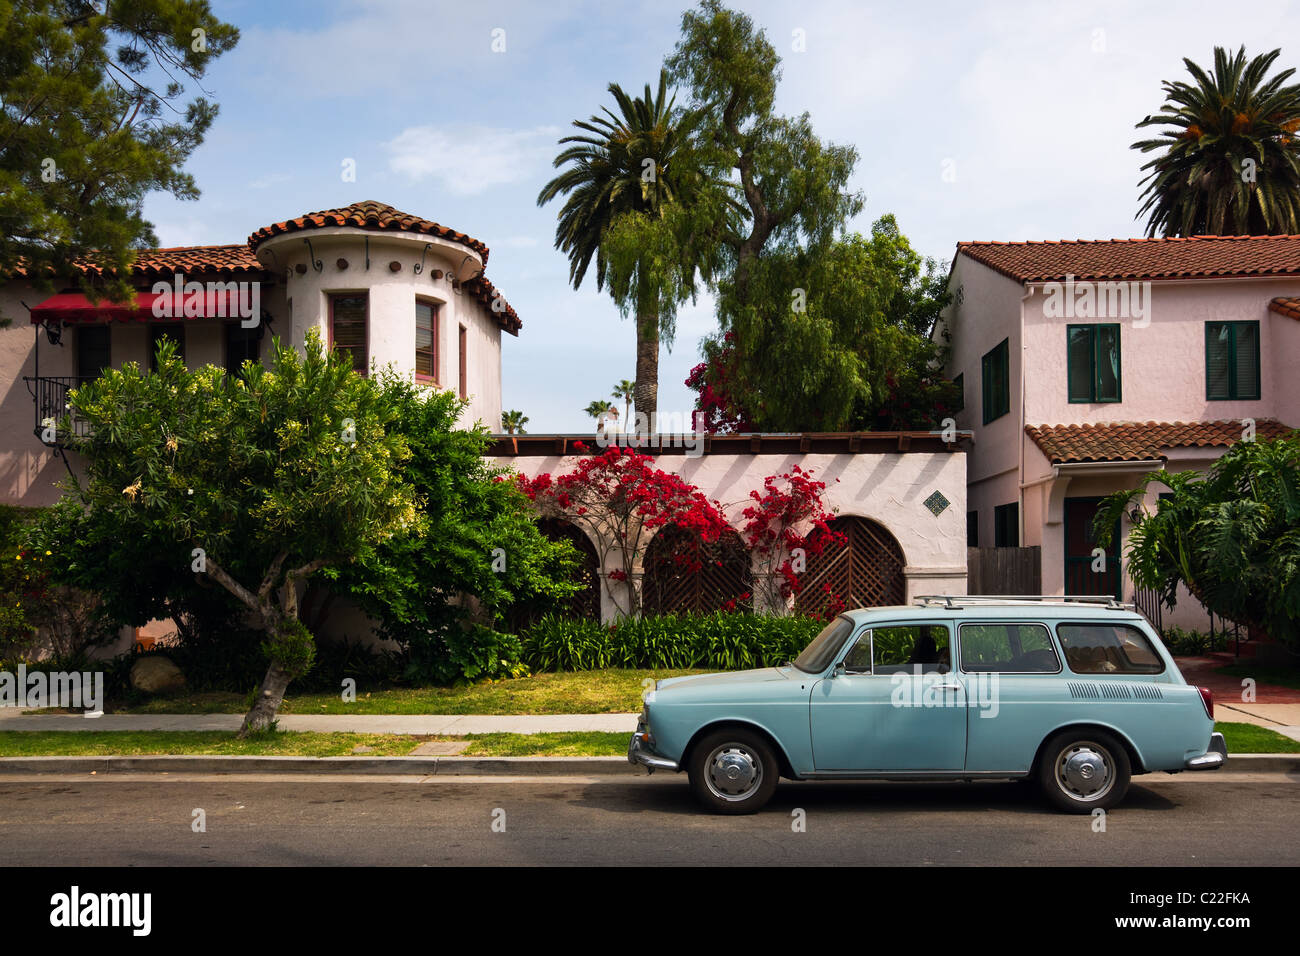 Old VW squareback wagon parked in front of a house in